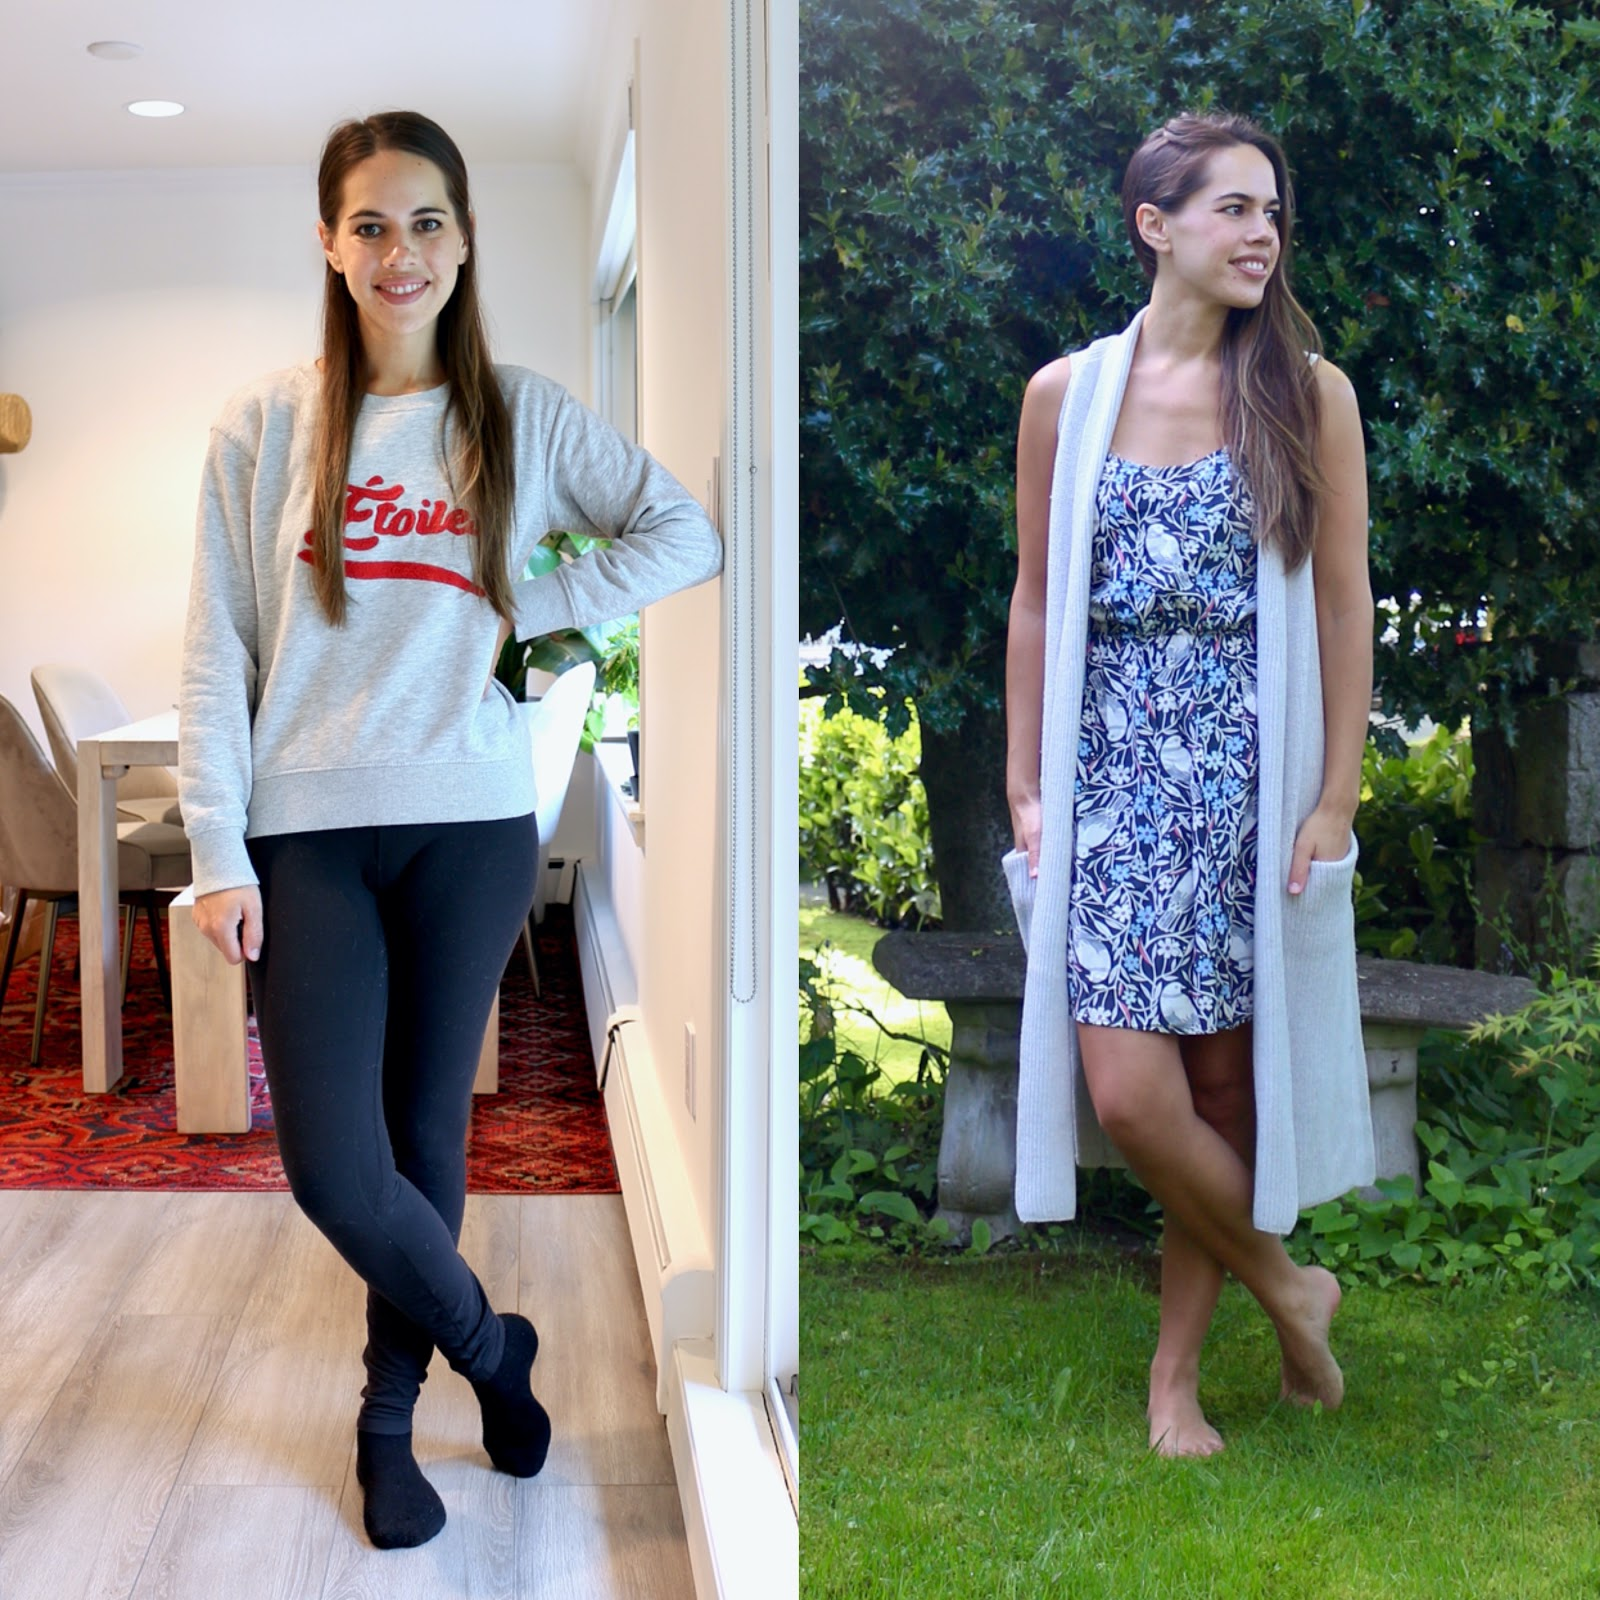 Jules in Flats - May Outfits Week 2 (Easy Work from Home Outfits)